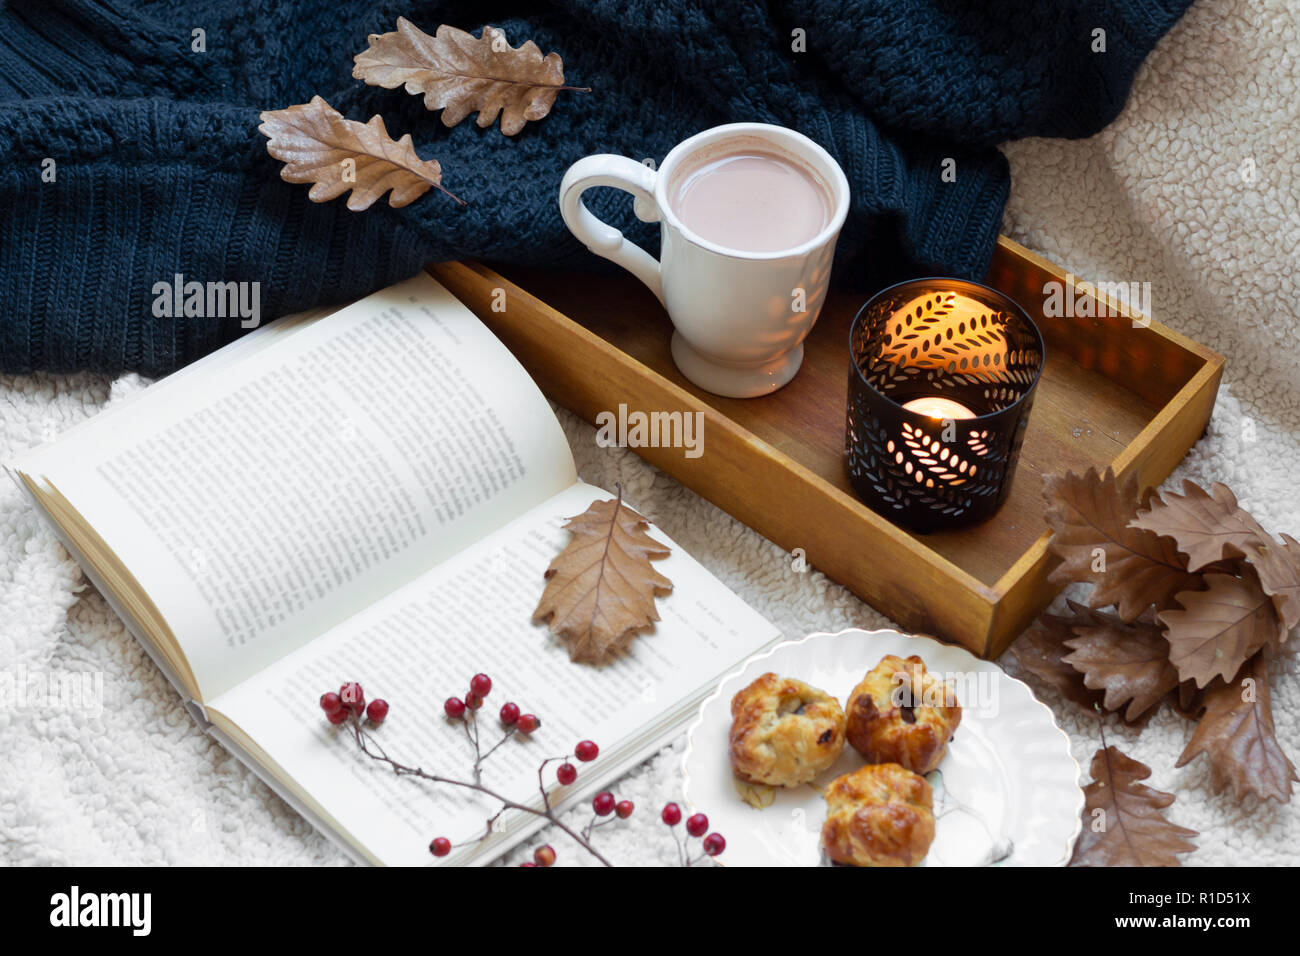 Hygge style. book and mug of coffee wrapped in warm scarf. - Stock Image